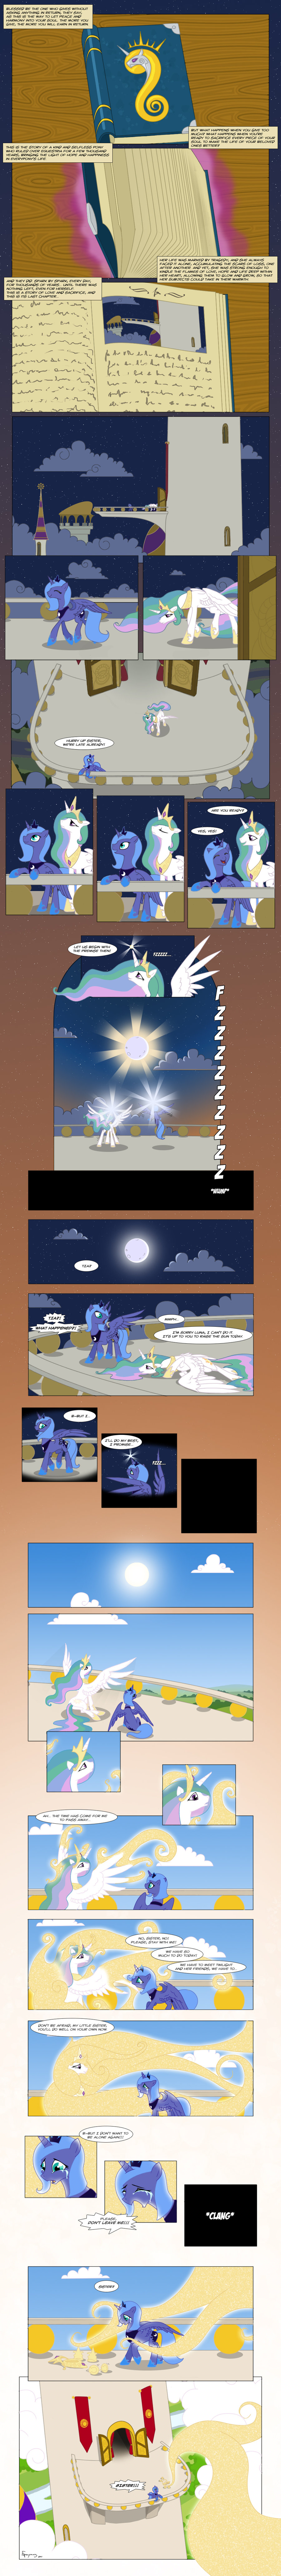 My Little Pony: Friendship Is Magic - Page 2 20120829143024a